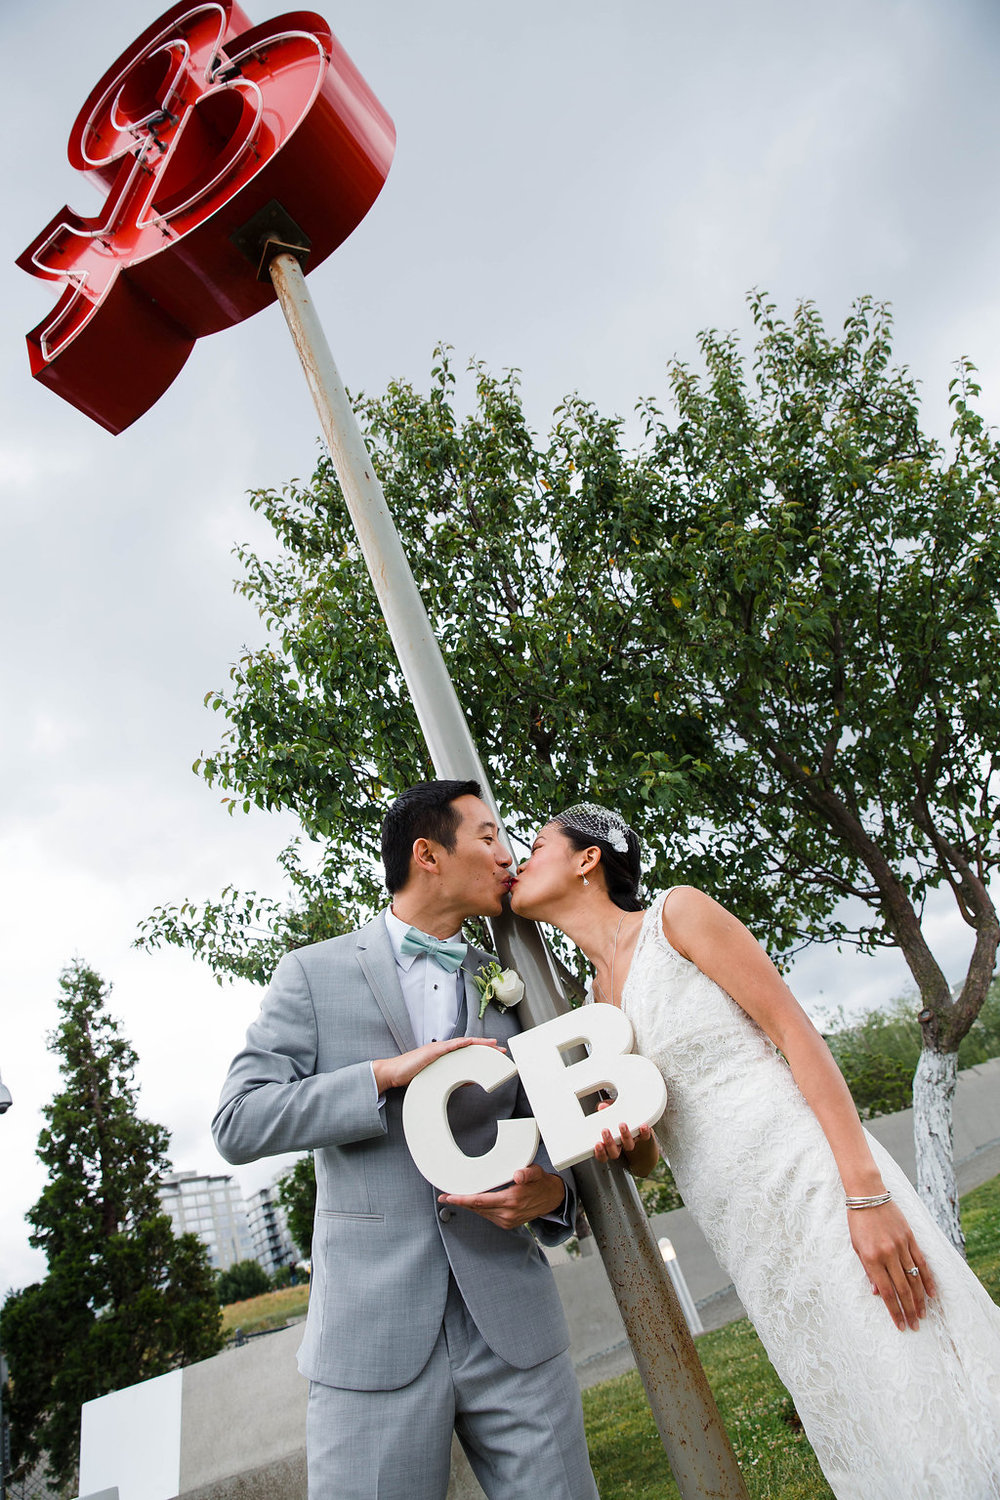 Bao_Uyen+Chris_Wedding_Seattle_Bell_Harbor_6182016_186.jpg